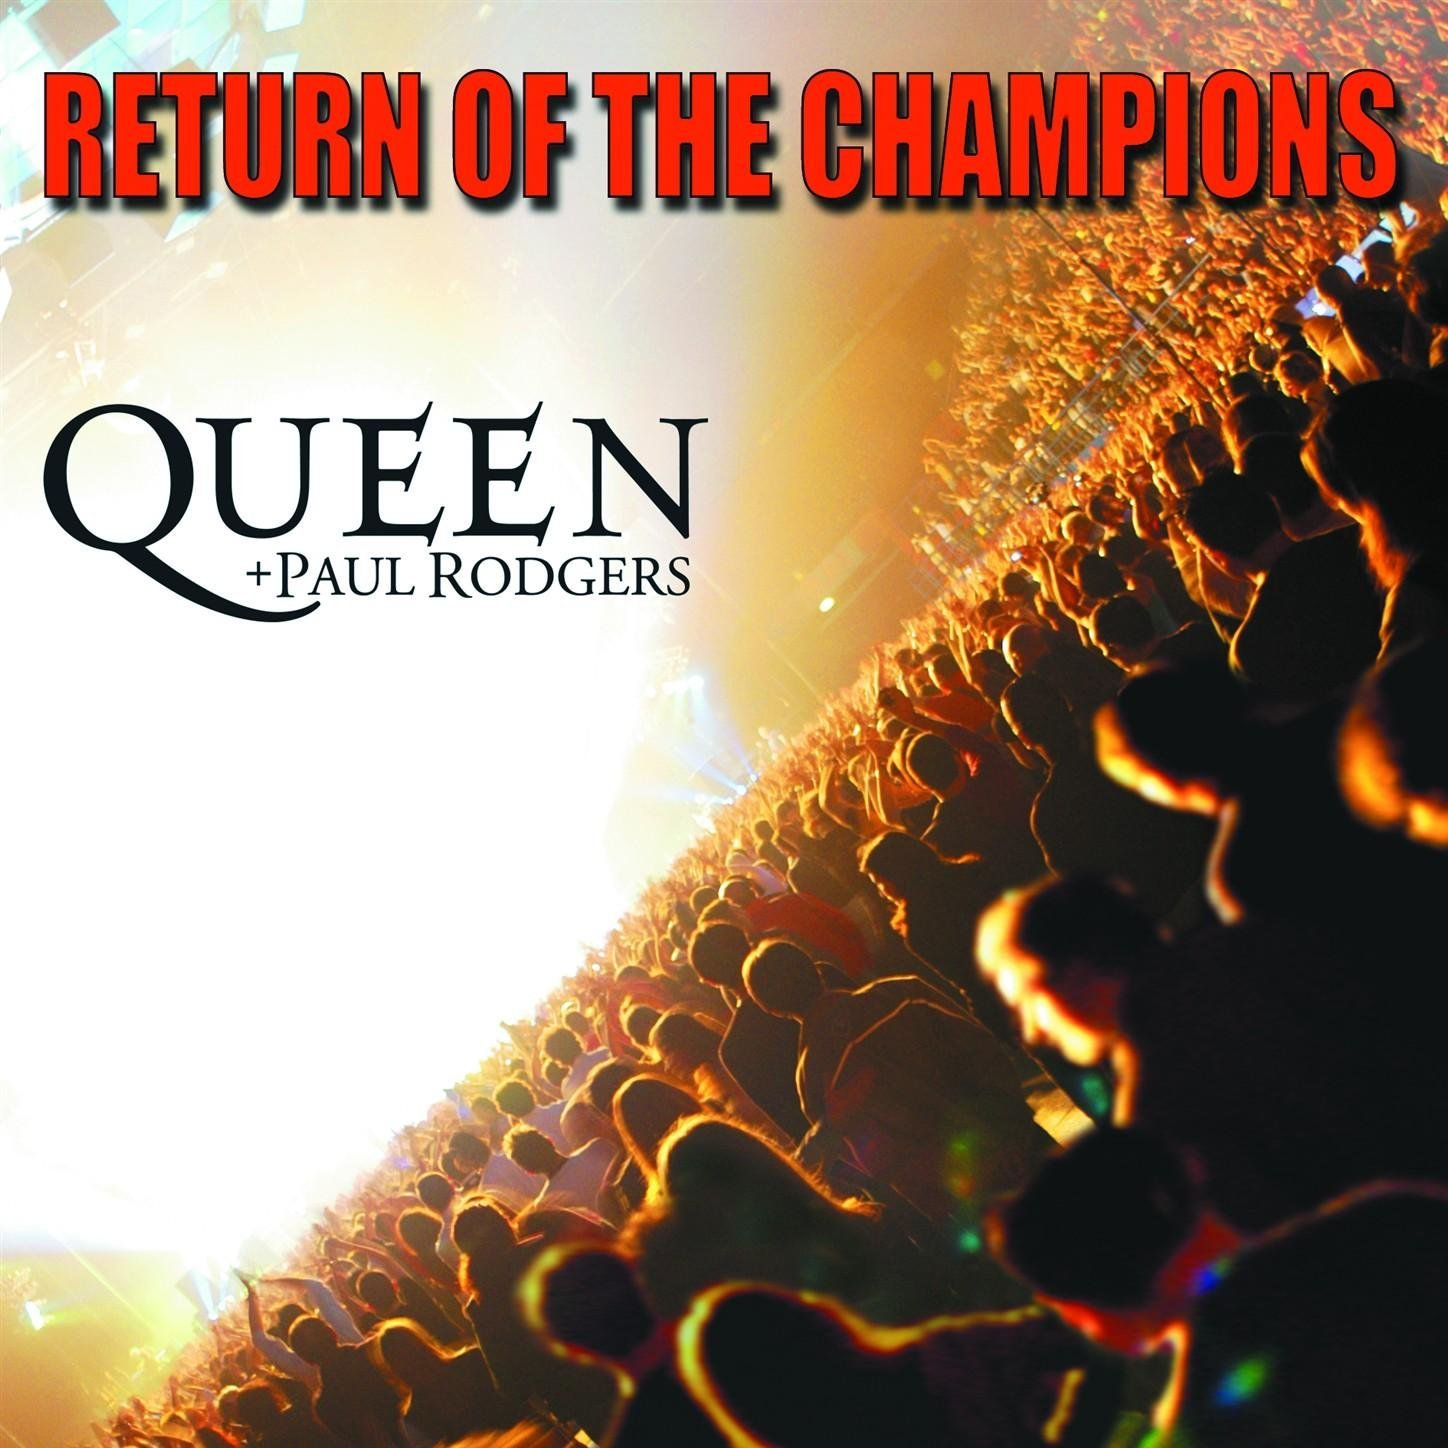 Queen + Paul Rodgers - Return Of The Champions 2005